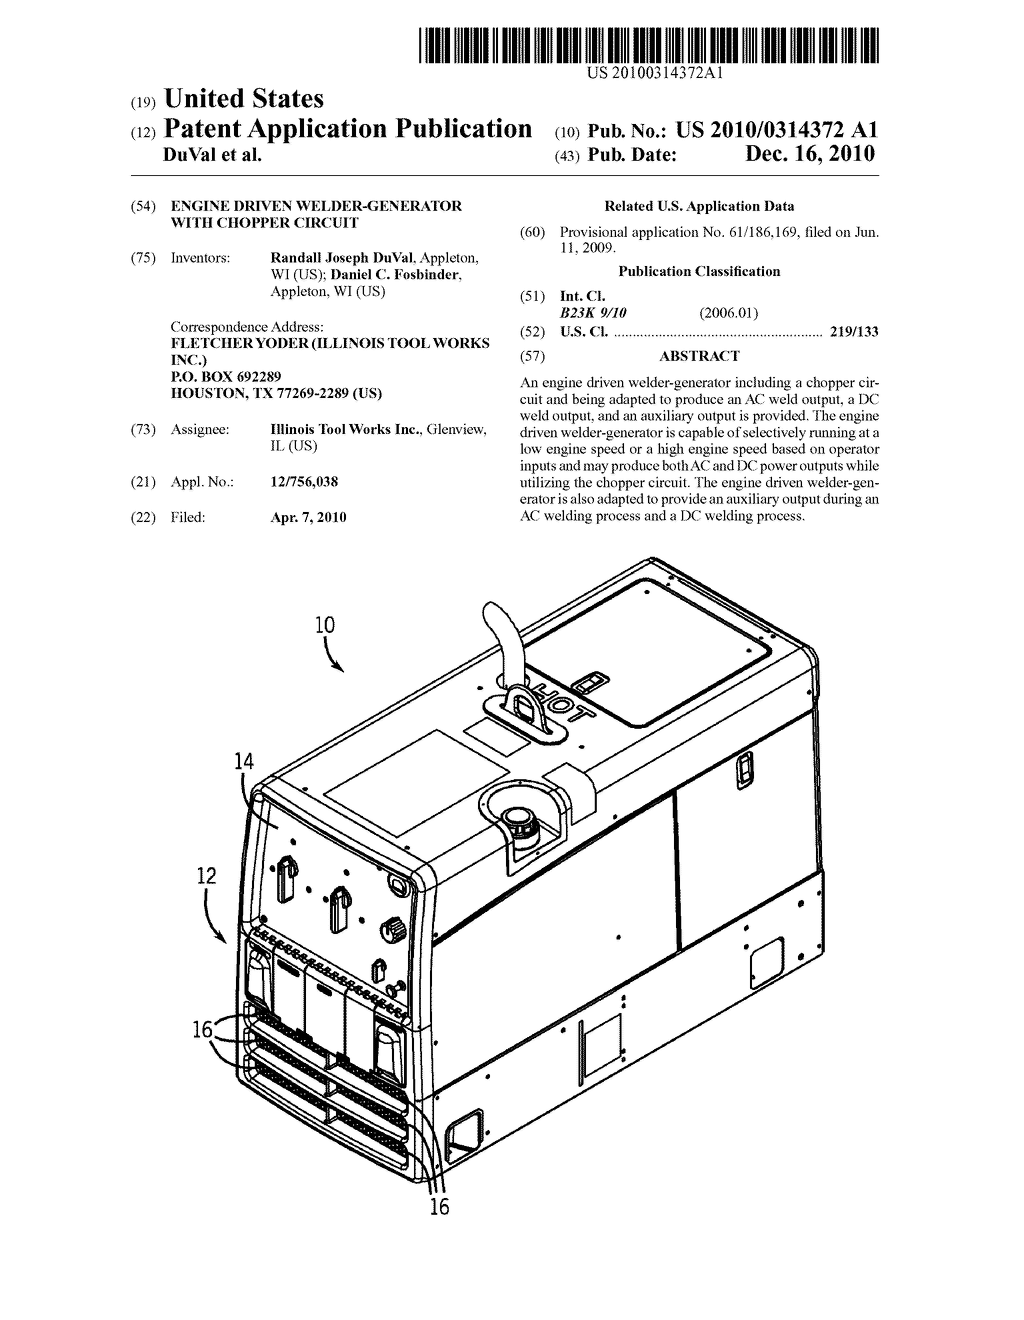 engine driven welder-generator with chopper circuit - diagram, schematic,  and image 01